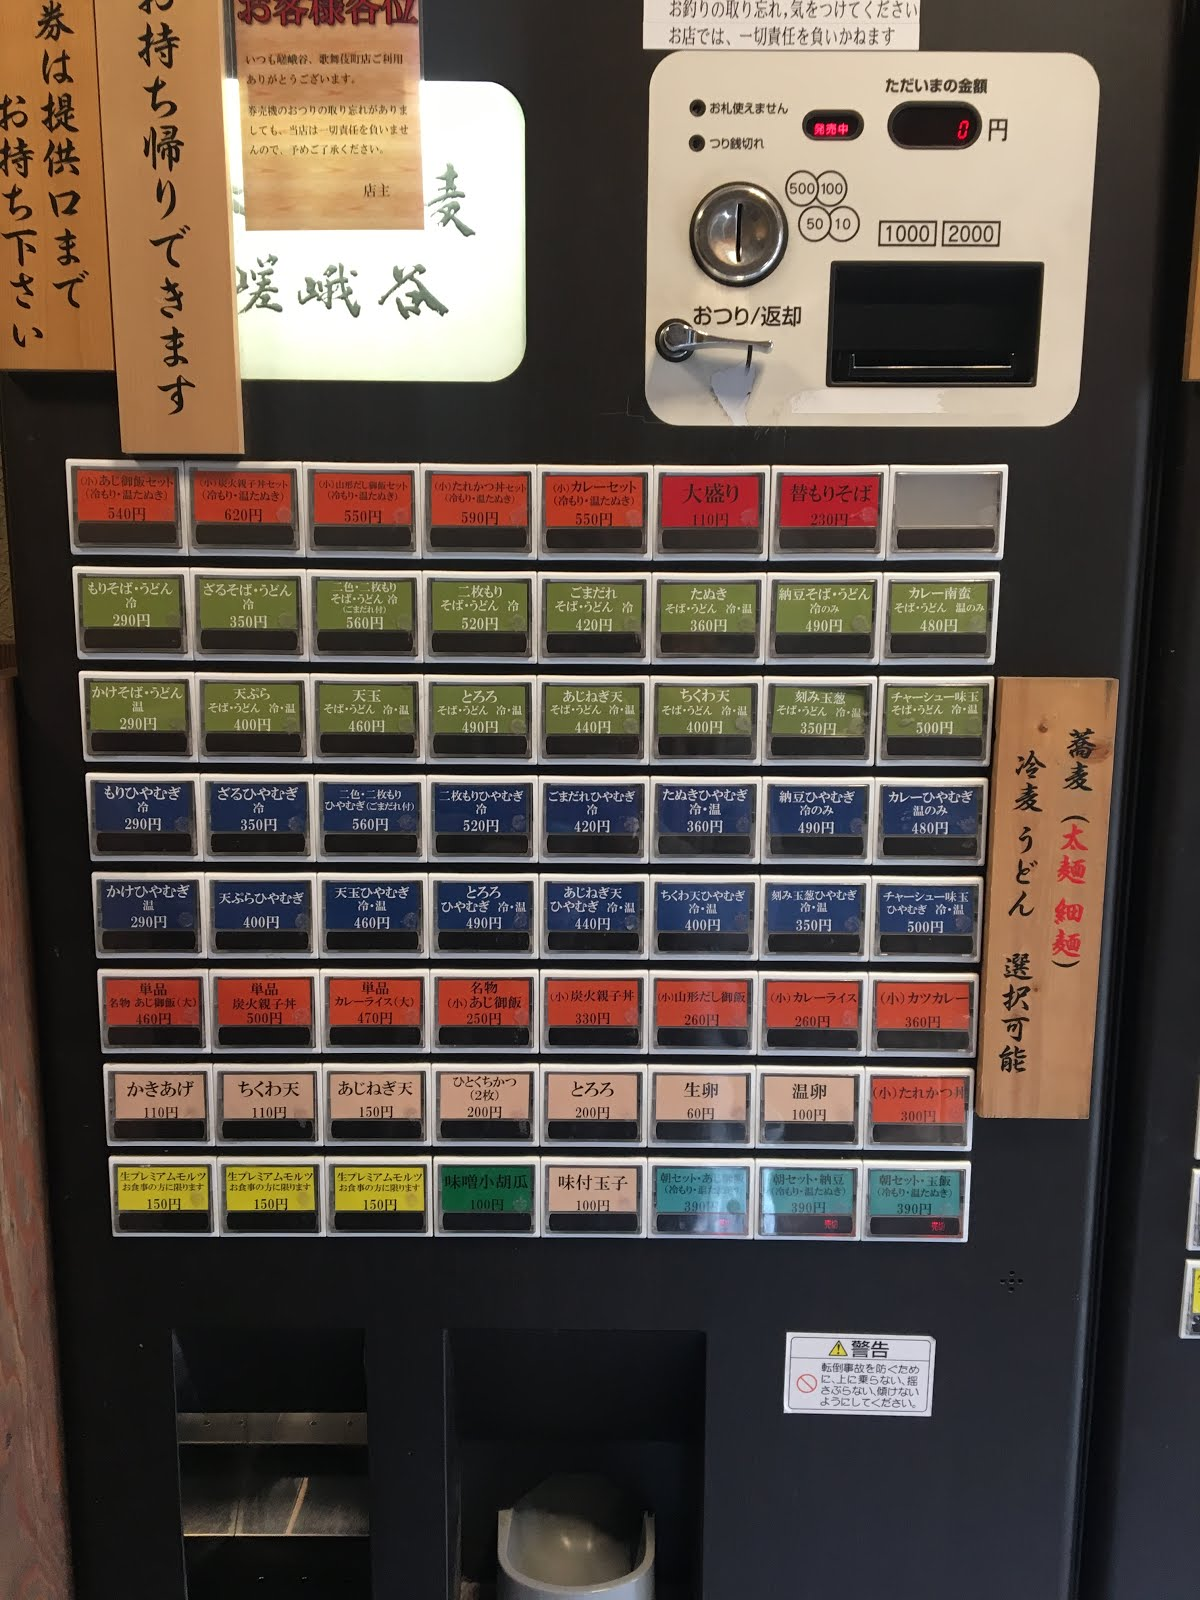 Vending machines found outside of smaller restaurants where you order and pay for the food you want.